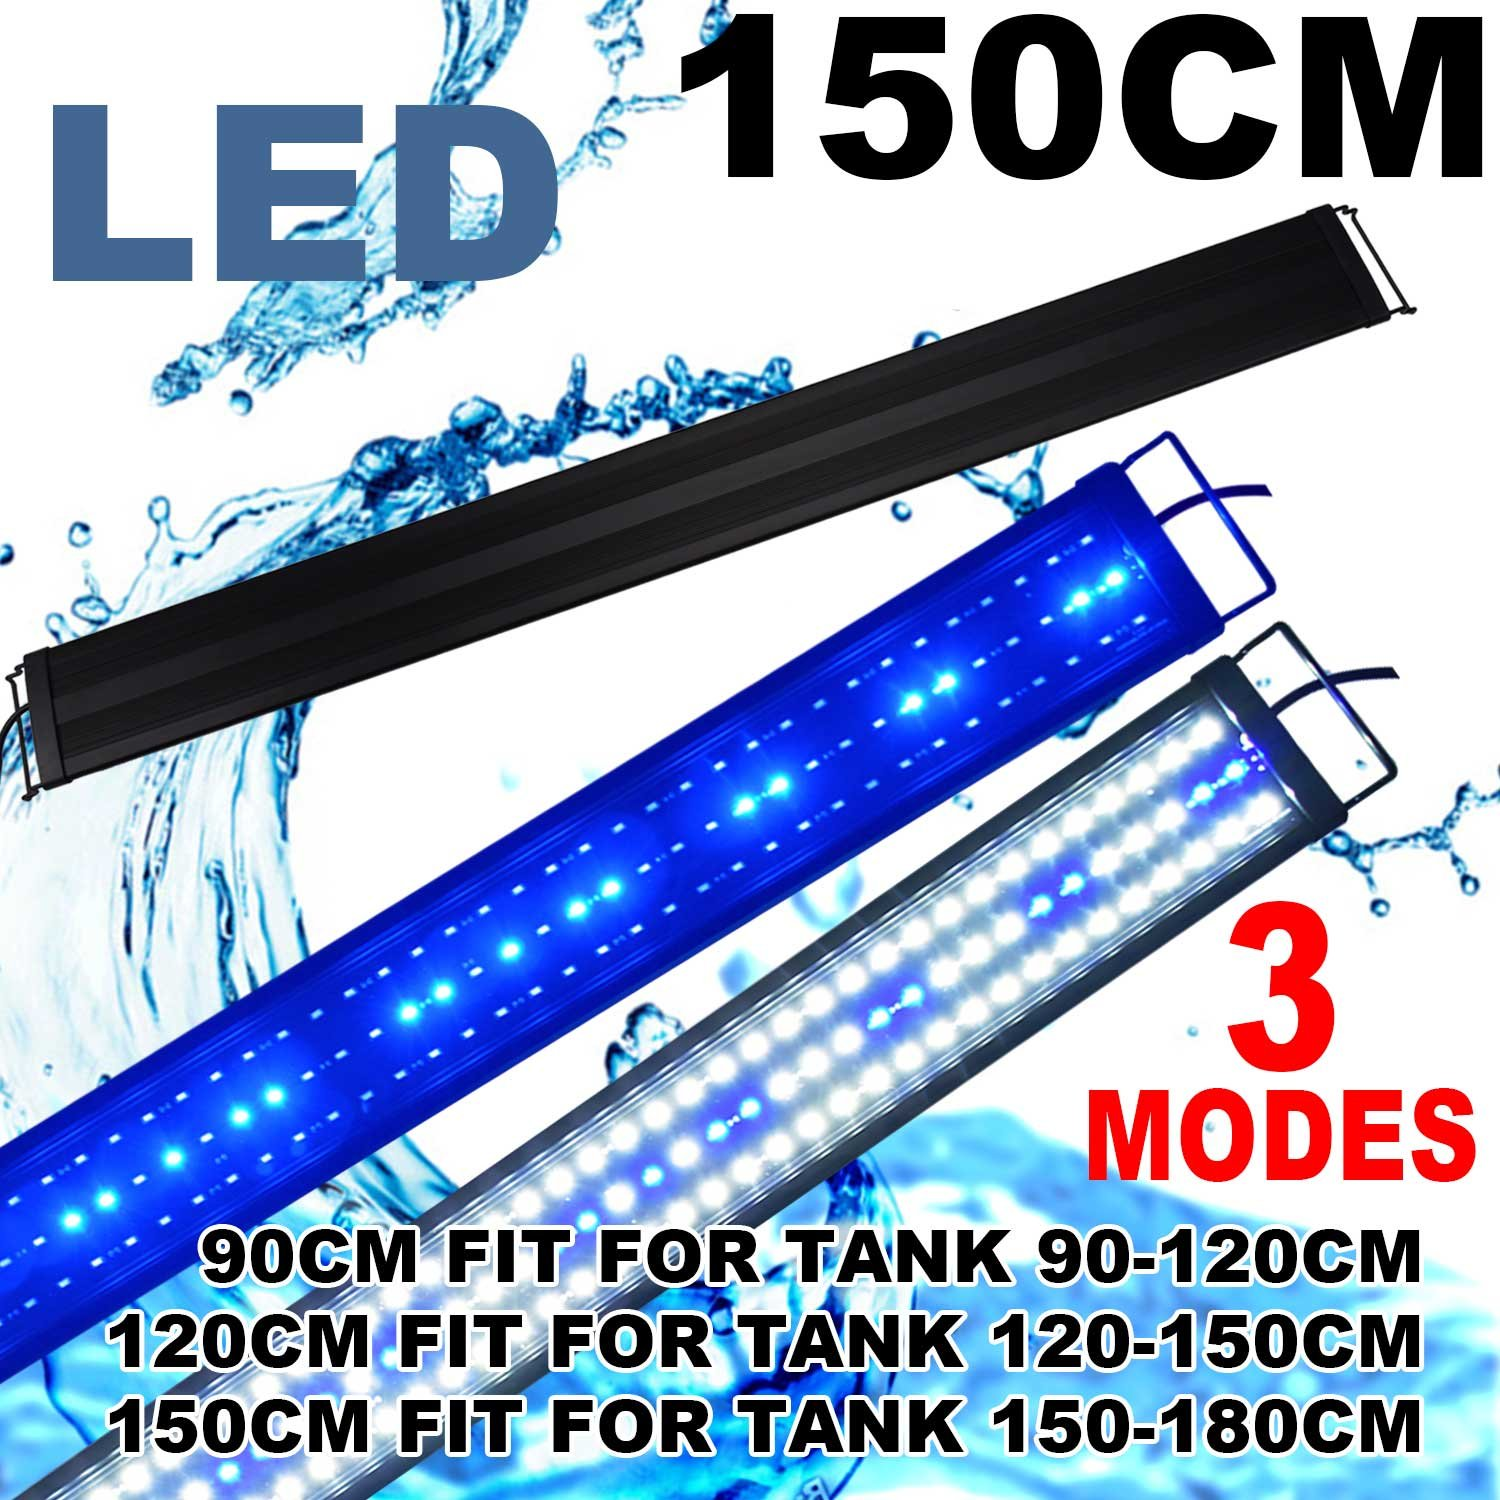 bluee and White 60-72 inch KZKR LED Aquarium Hood Lighting 60-72 inch Fish Tank Light Lamp for Freshwater Saltwater Marine bluee and White Decorations Light 5-6ft 150cm 180cm (36W)